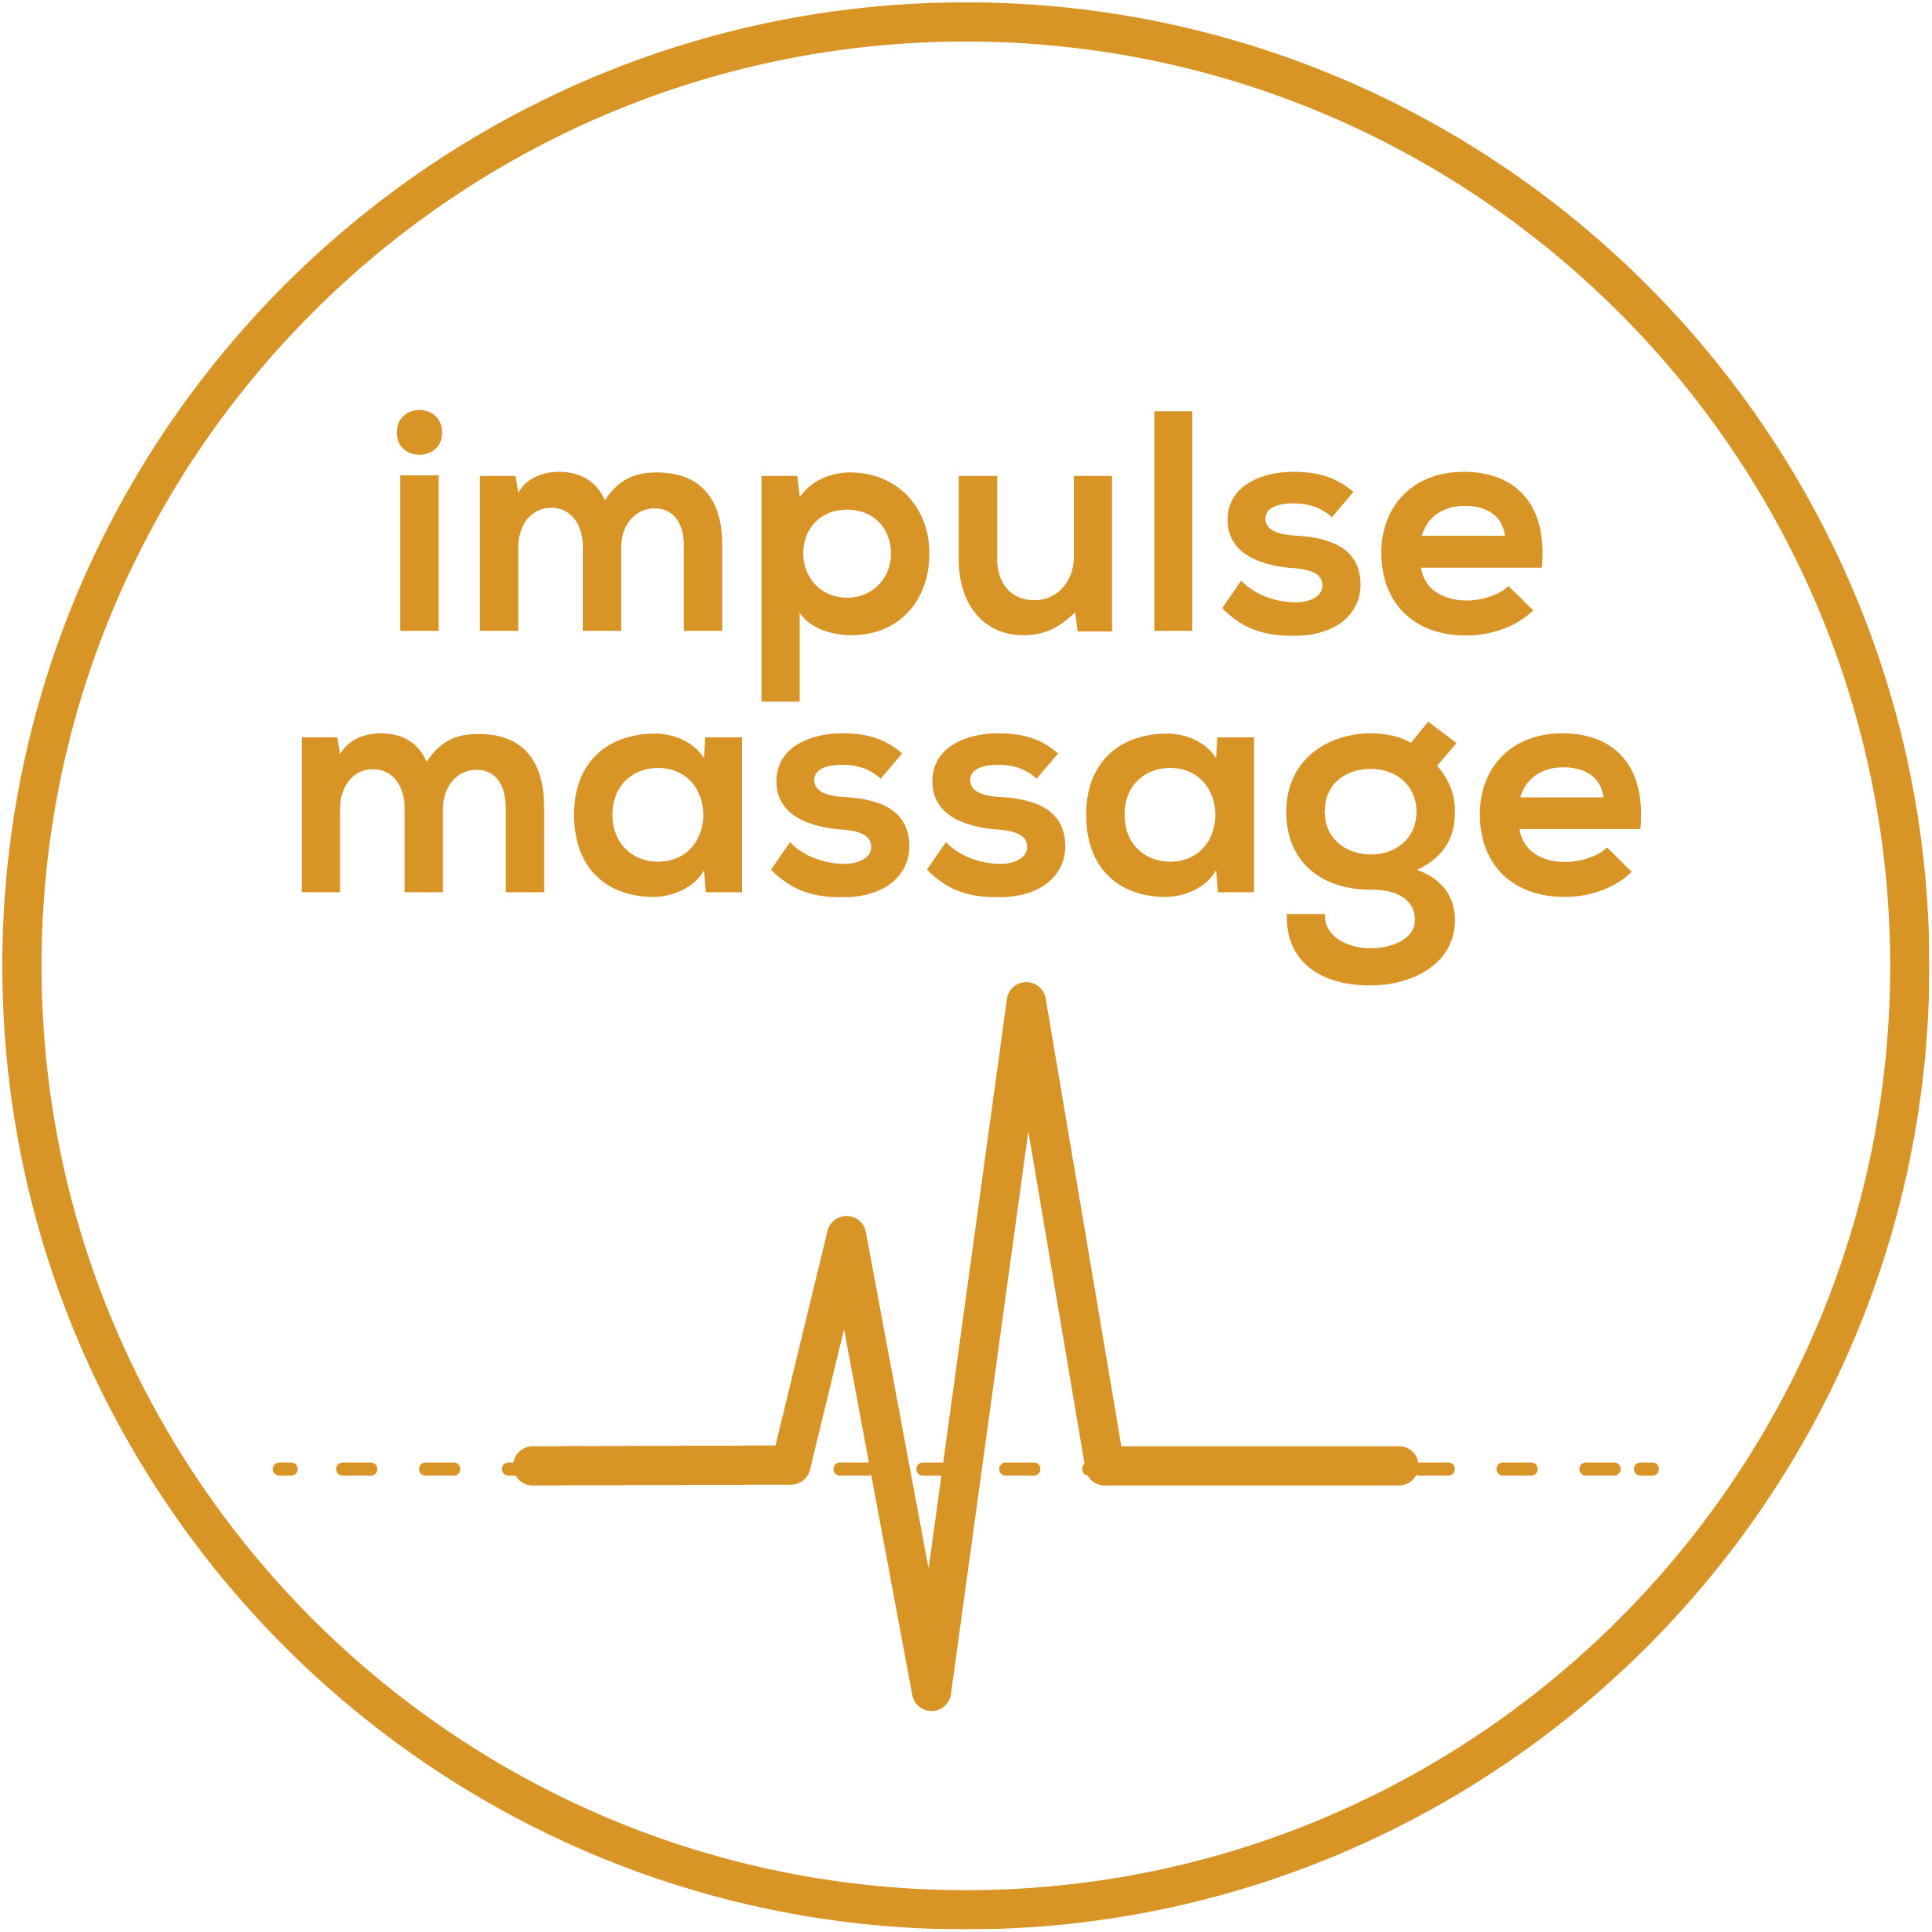 Massage par impulsions Favorise la circulation sanguine, soulage les tensions musculaires